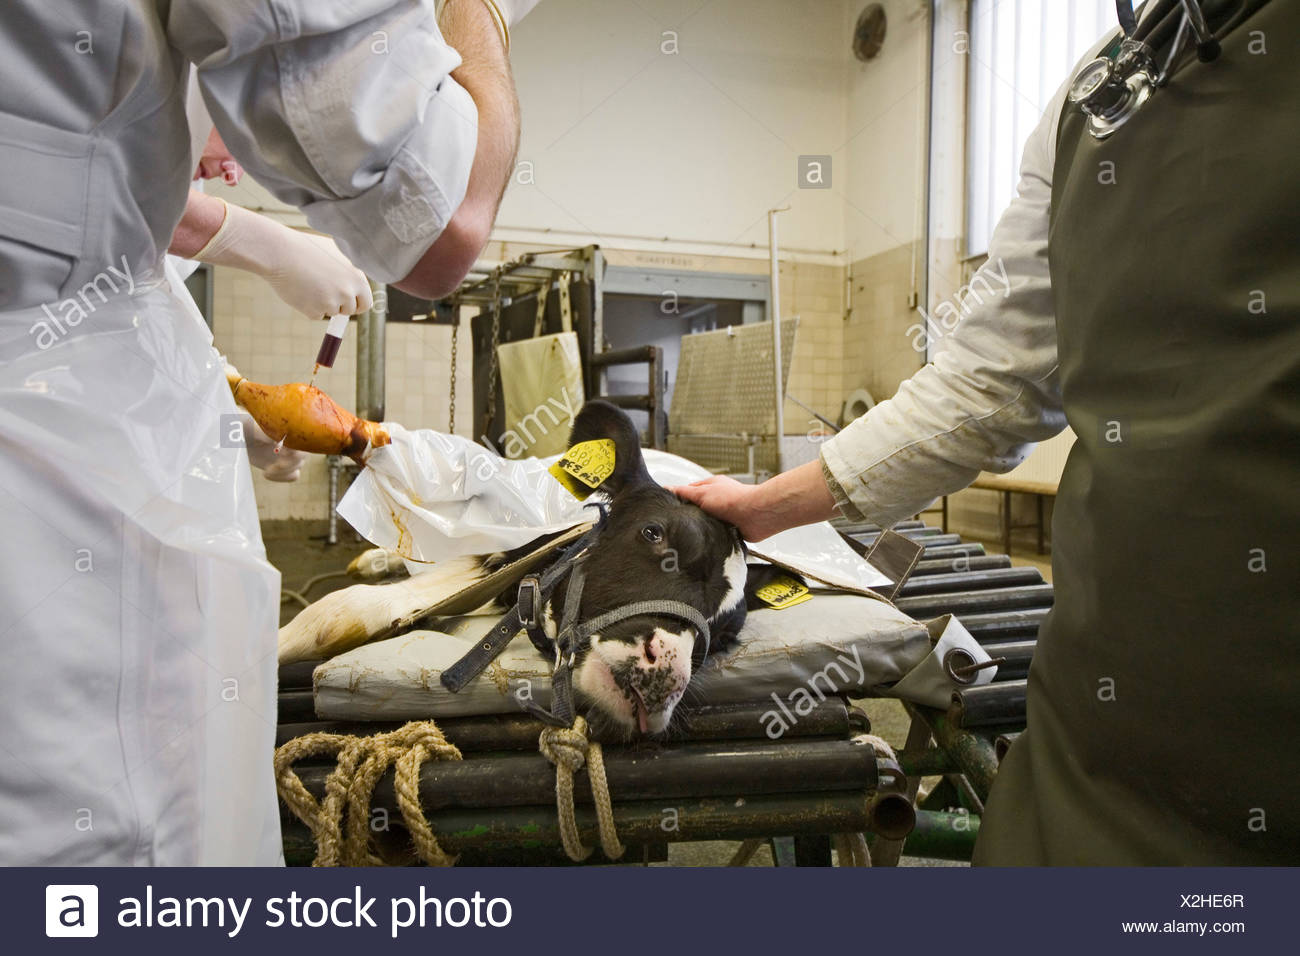 Veterinary surgeons operate on a calf, University of Veterinary Medicine, TiHo, Hanover, Lower Saxony, Germany - Stock Image